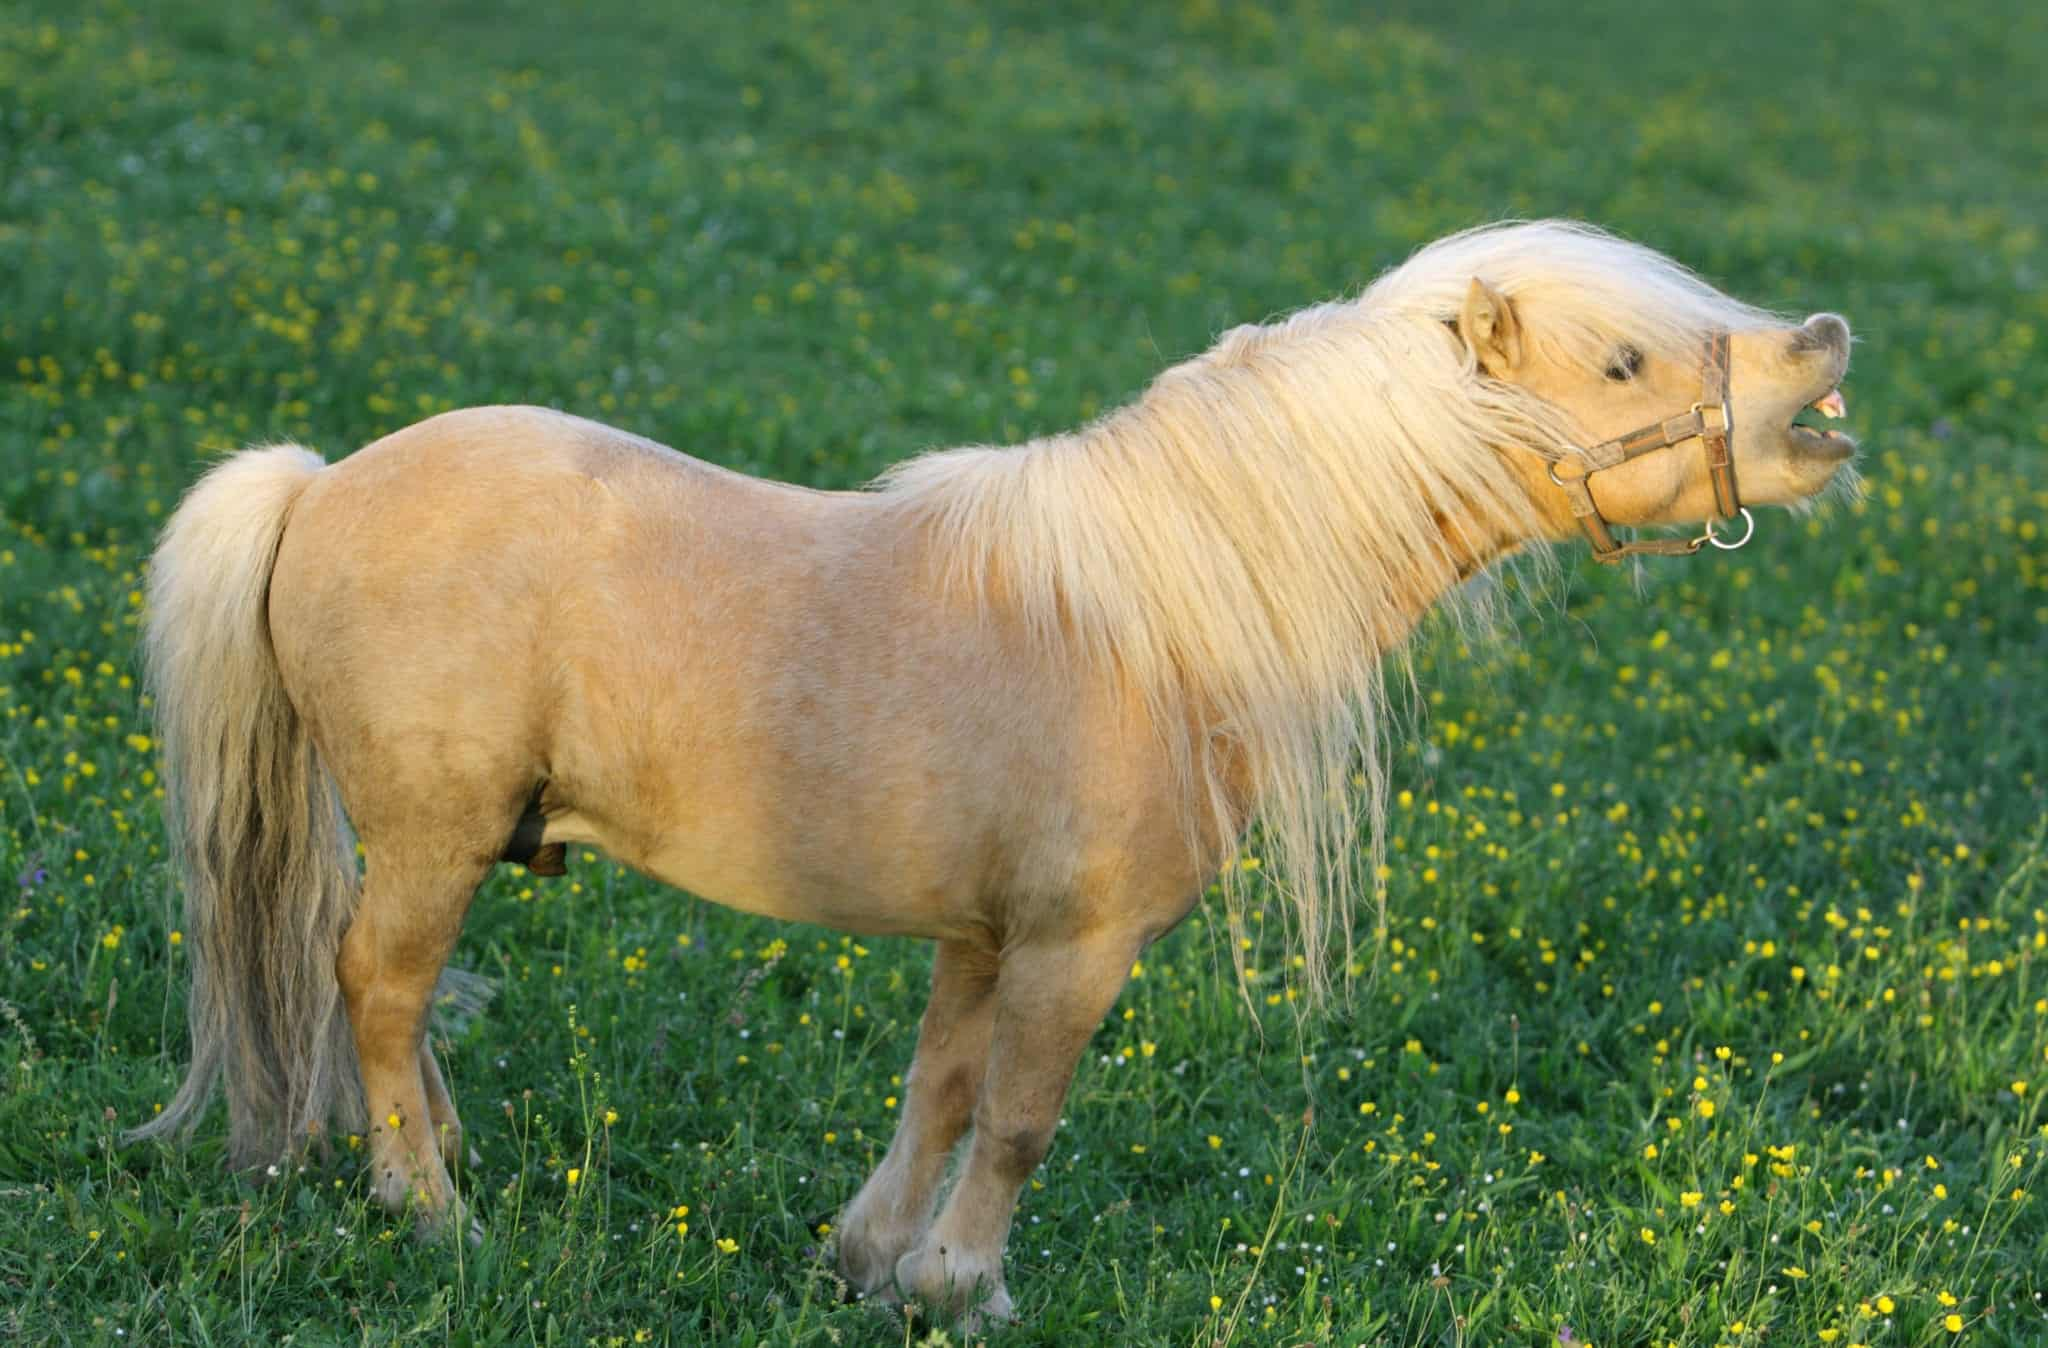 Neighing falabella stallion.